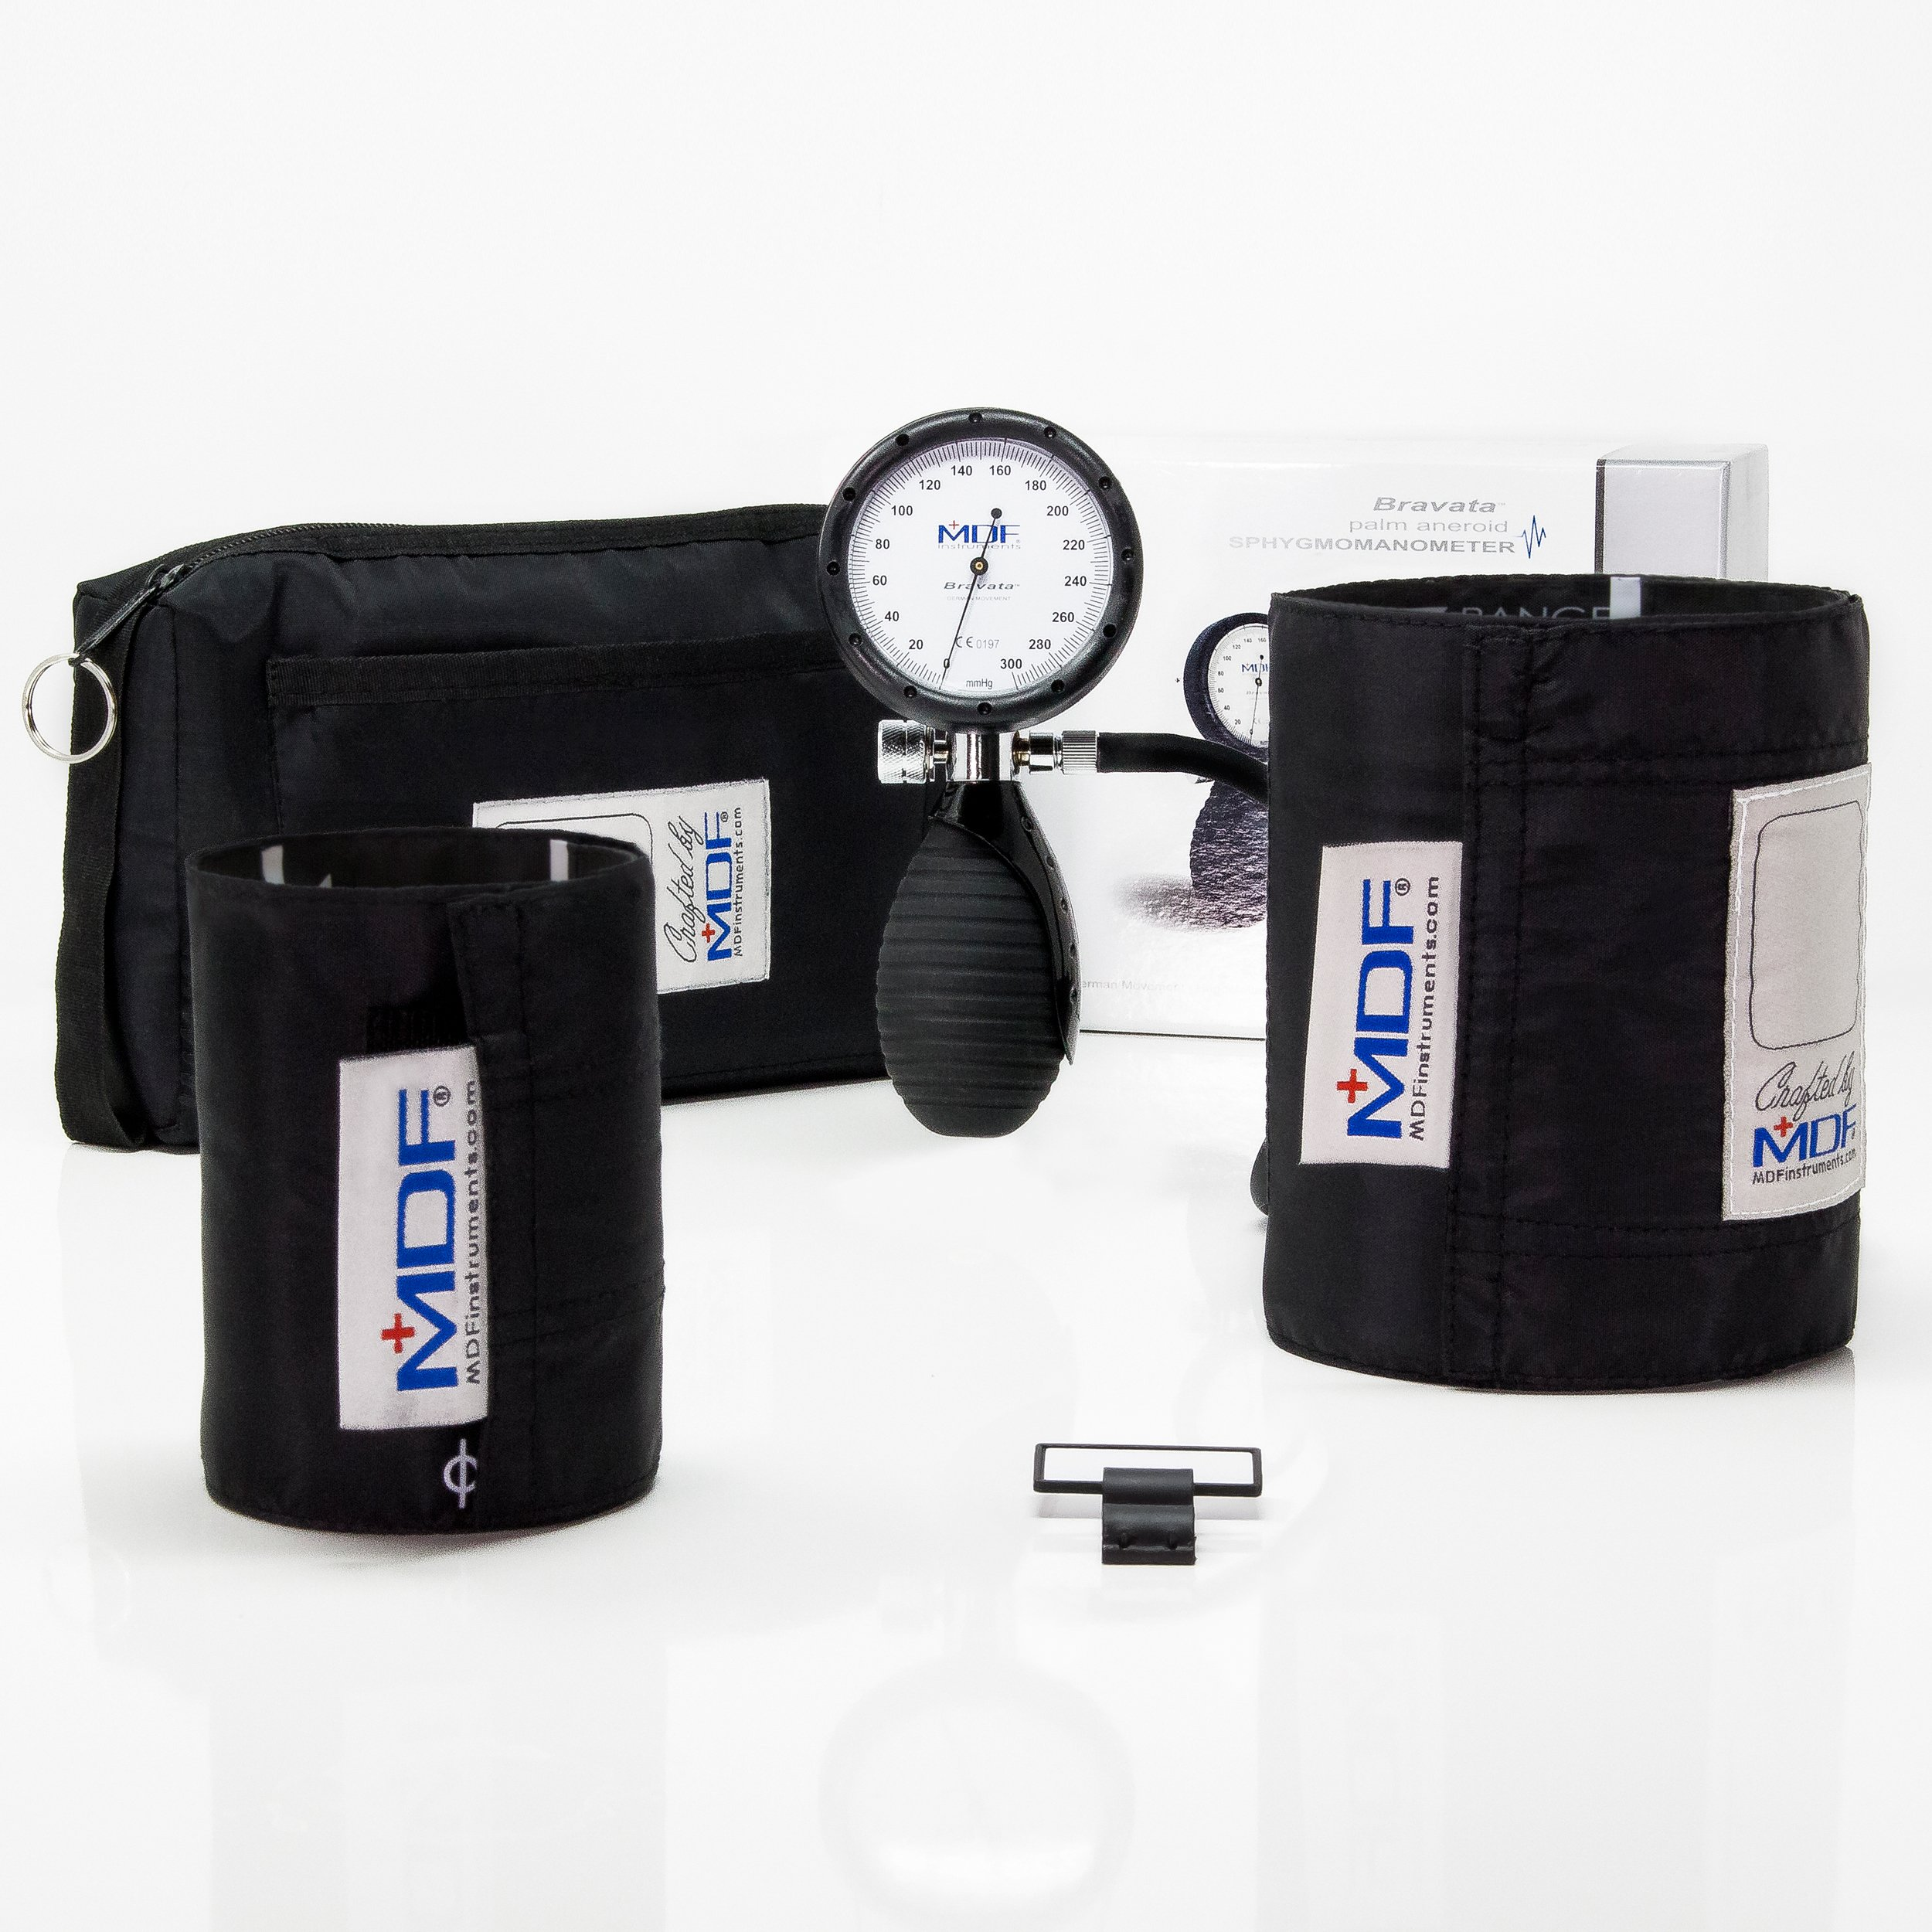 MDF® Bravata Palm Aneroid Sphygmomanometer - Professional Blood Pressure Monitor with Adult & Pediatric Sized Cuffs Included - Full Lifetime Warranty & Free-Parts-For-Life - Black (MDF848XPD-11)